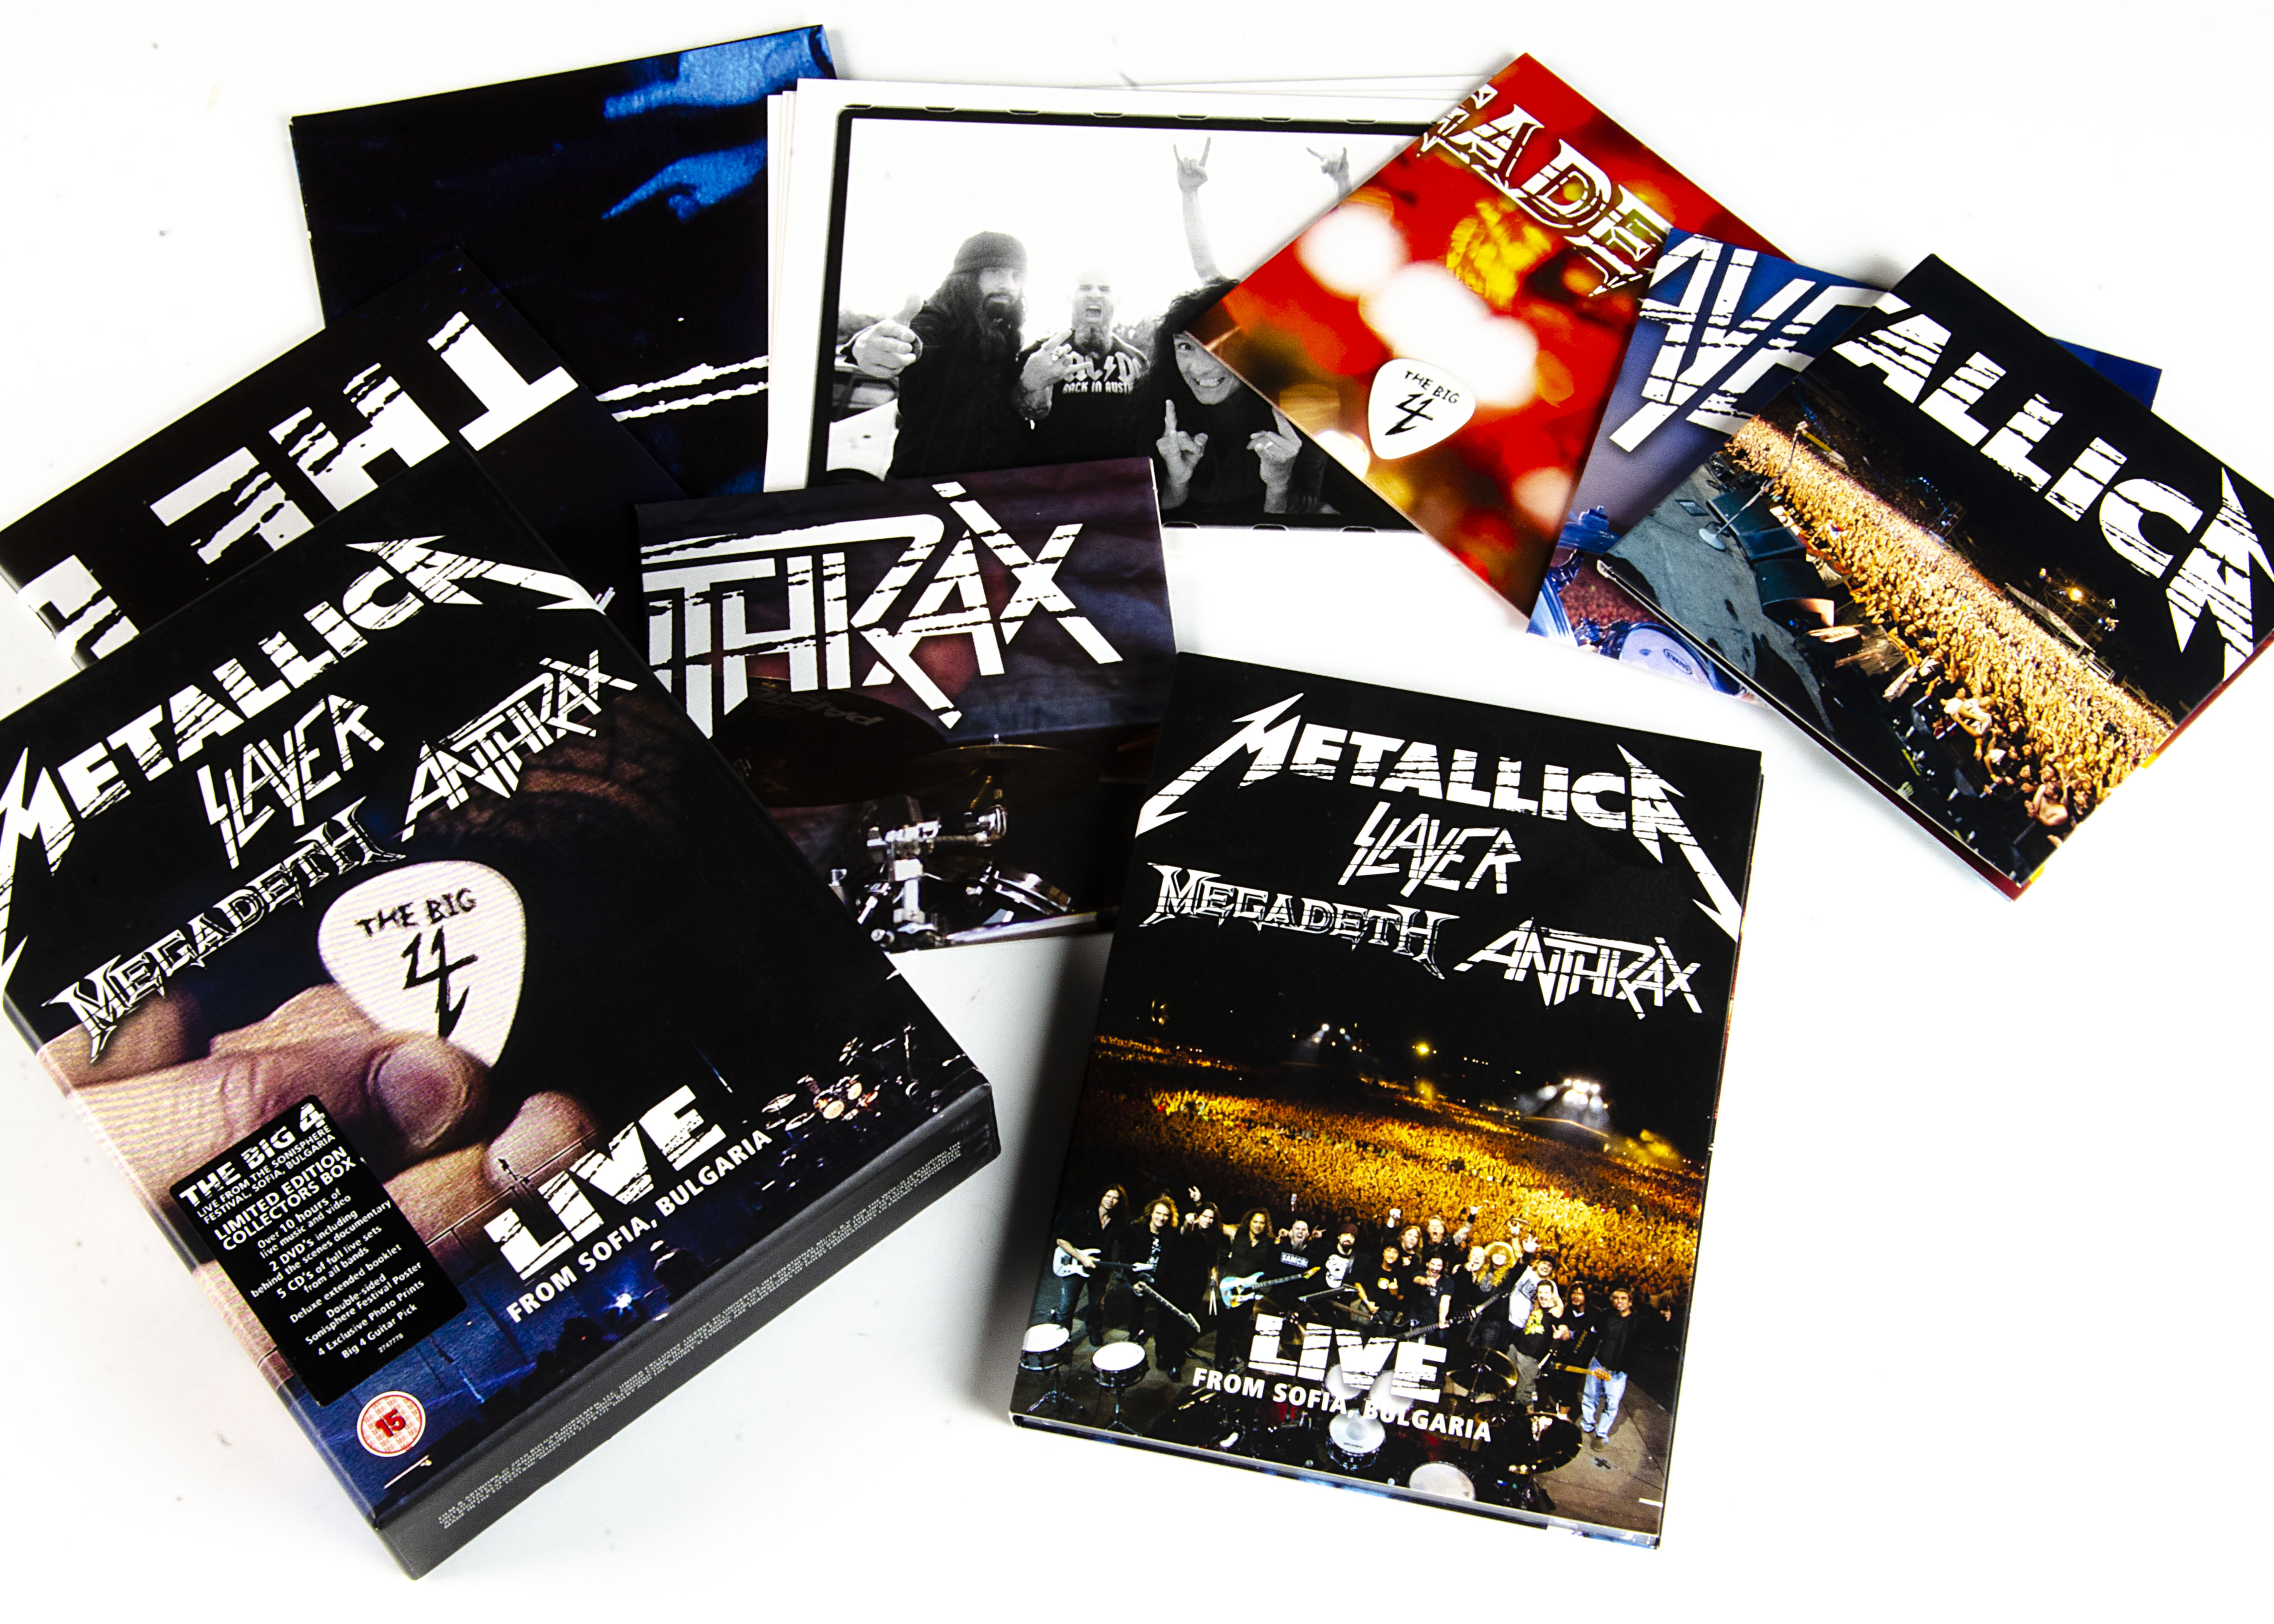 The Big 4 CD / DVD Box Set, five CD and two DVD Box Set with Live performances by Metallica,